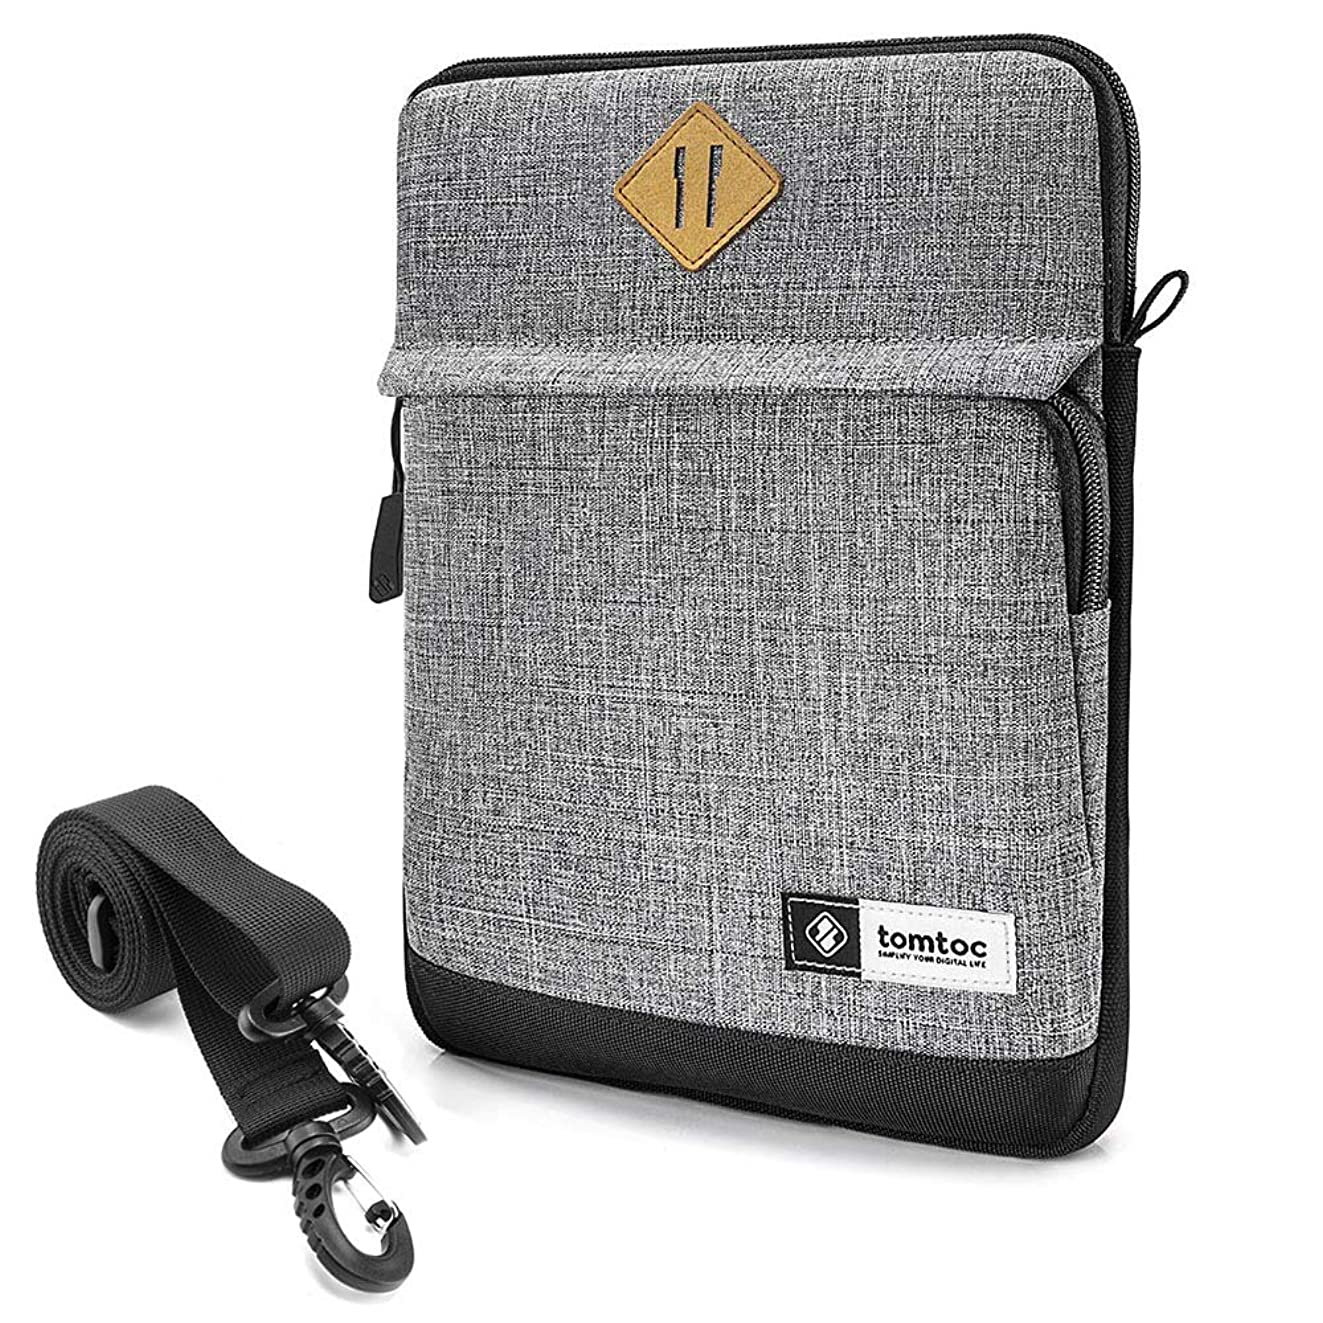 tomtoc 10.5-11 Inch Tablet Shoulder Bag for 11